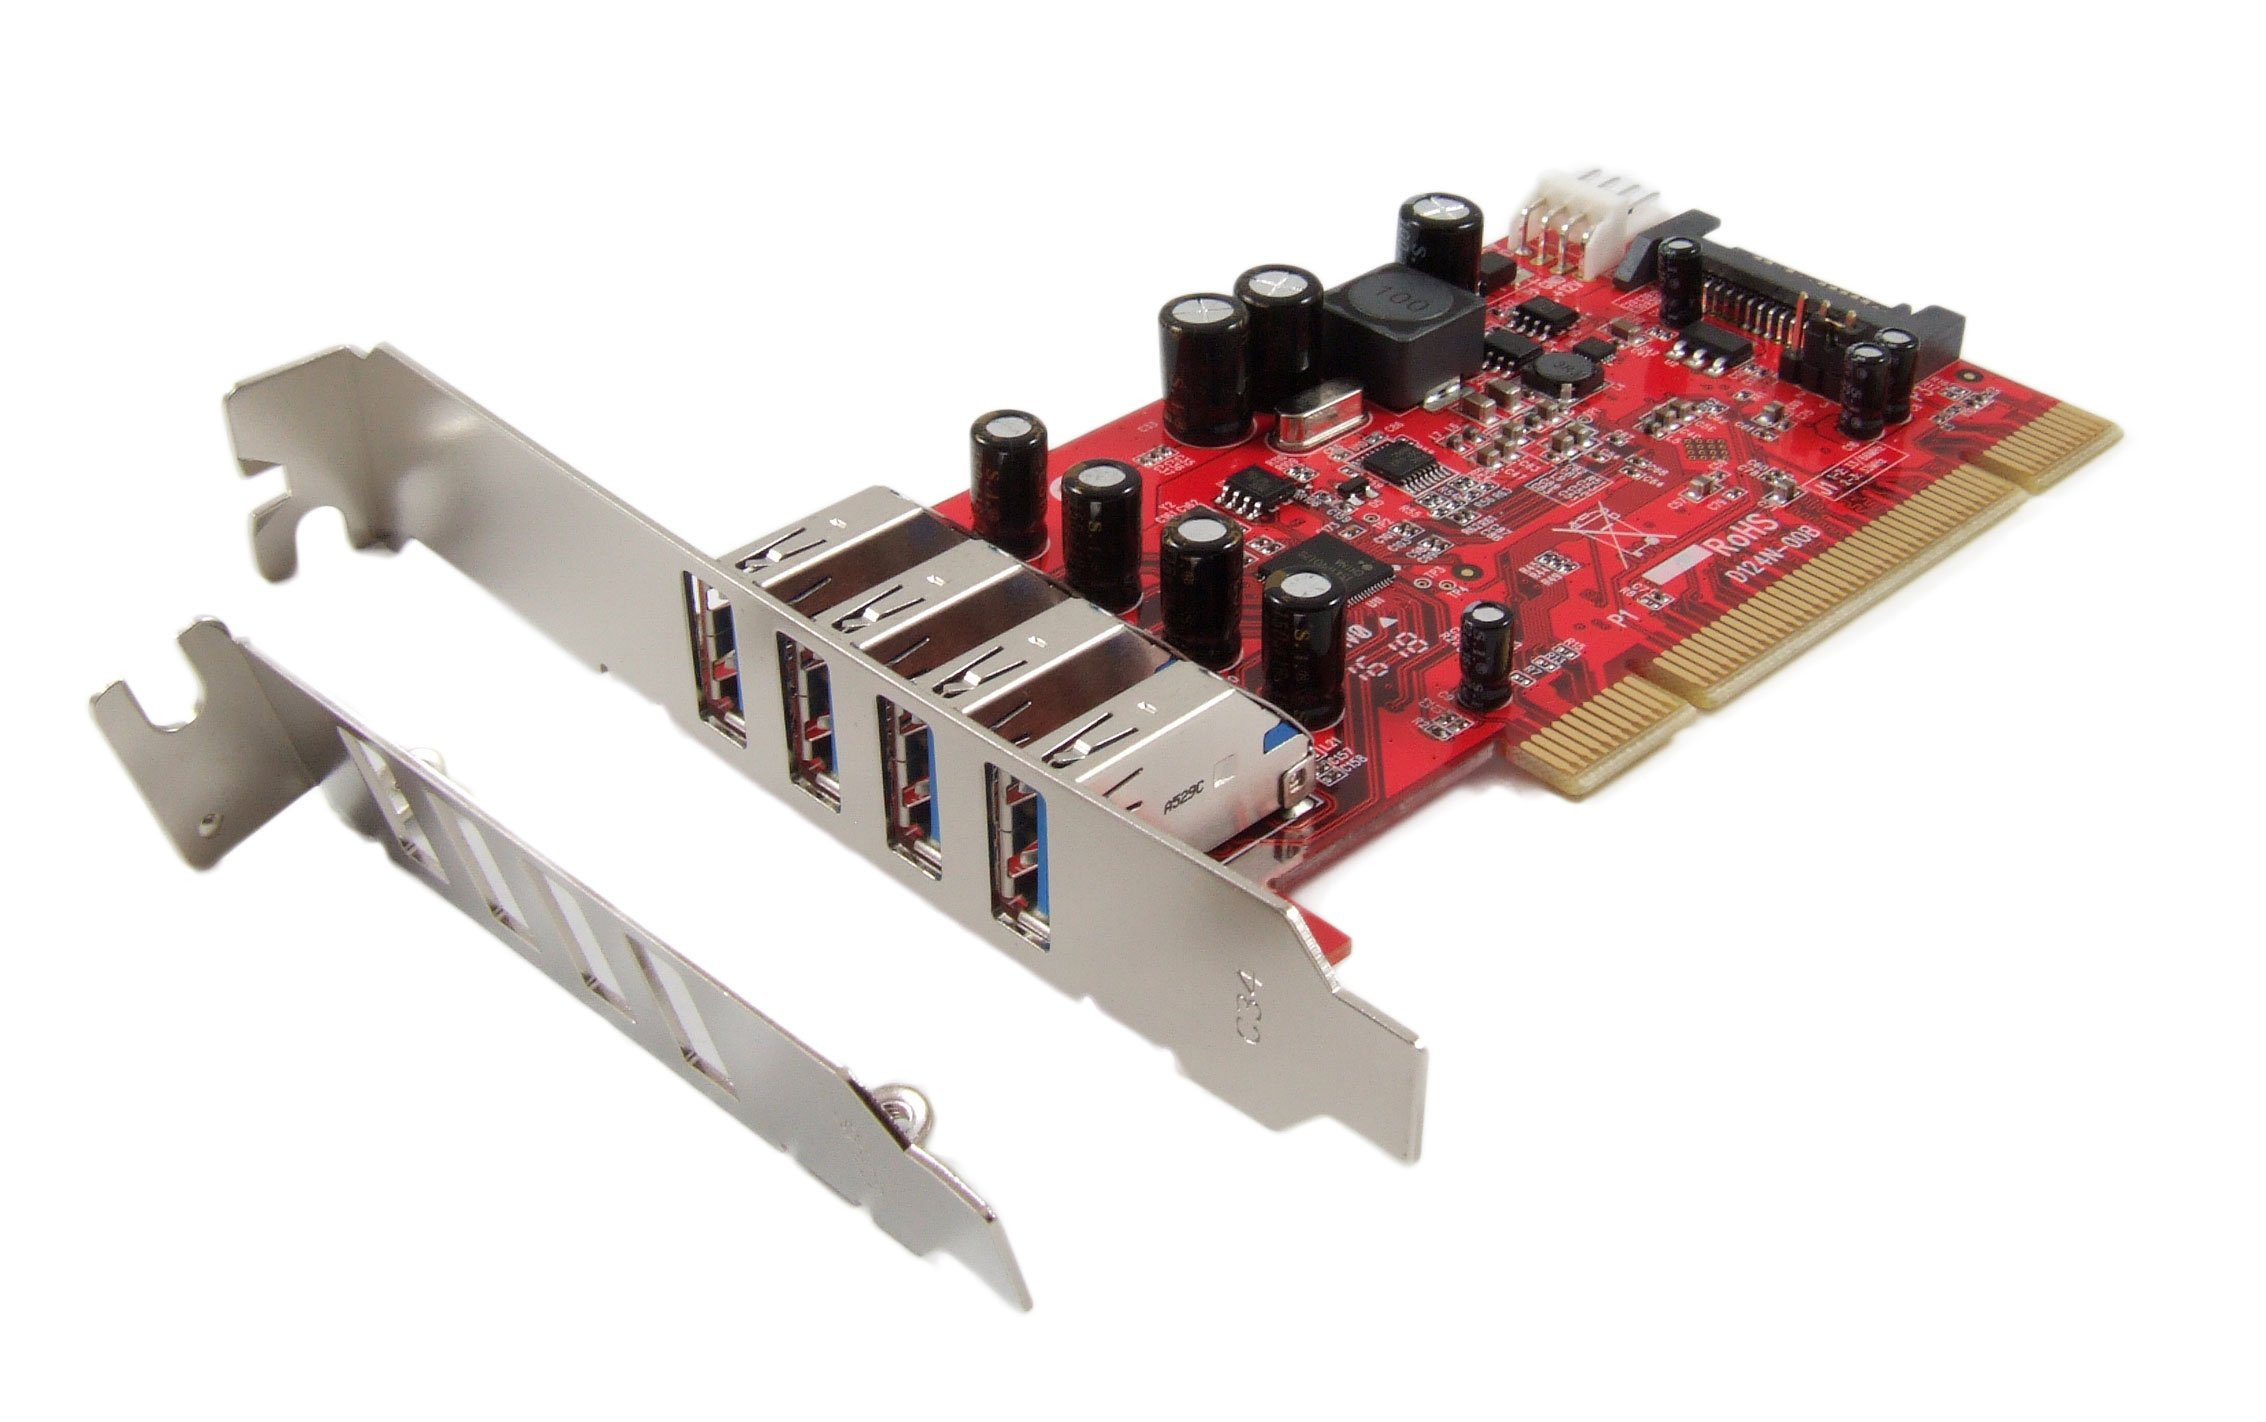 Ableconn Pci-ub124 Usb 3.0 4-port Low Profile Pci Host Adapt